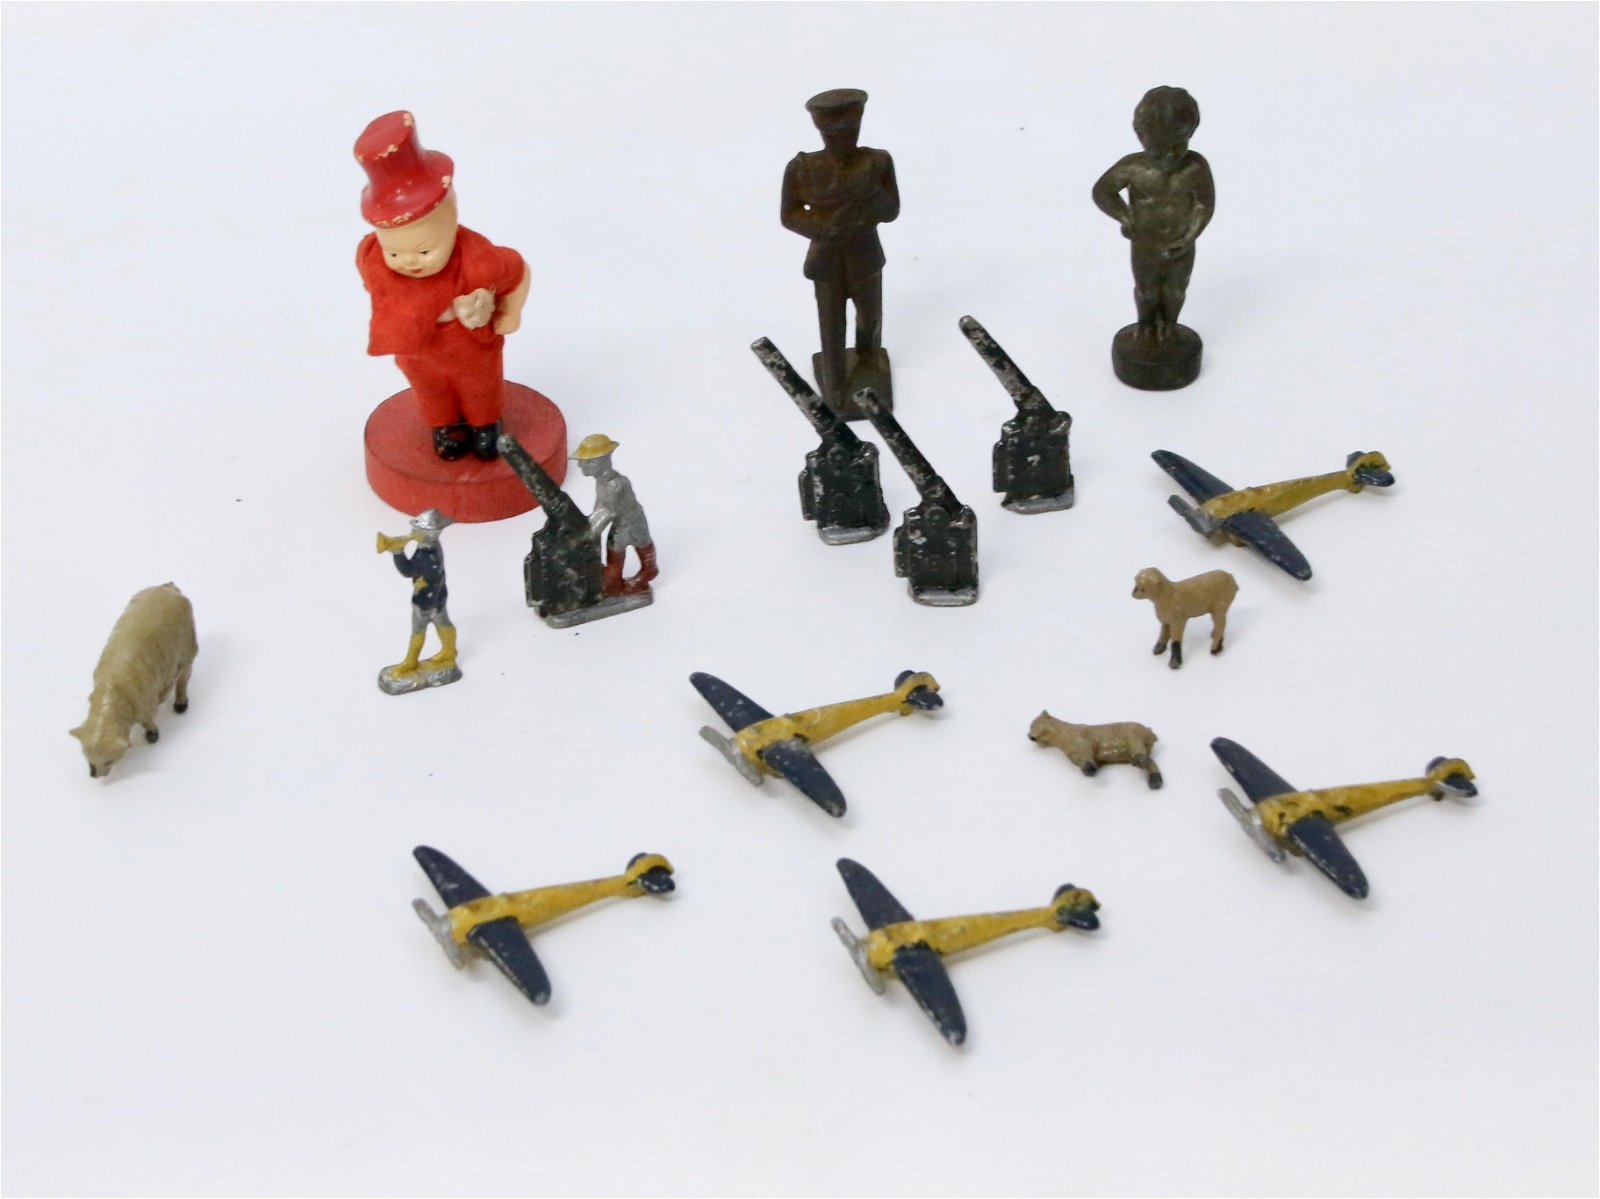 LEAD TOYS AND MISC. LOT